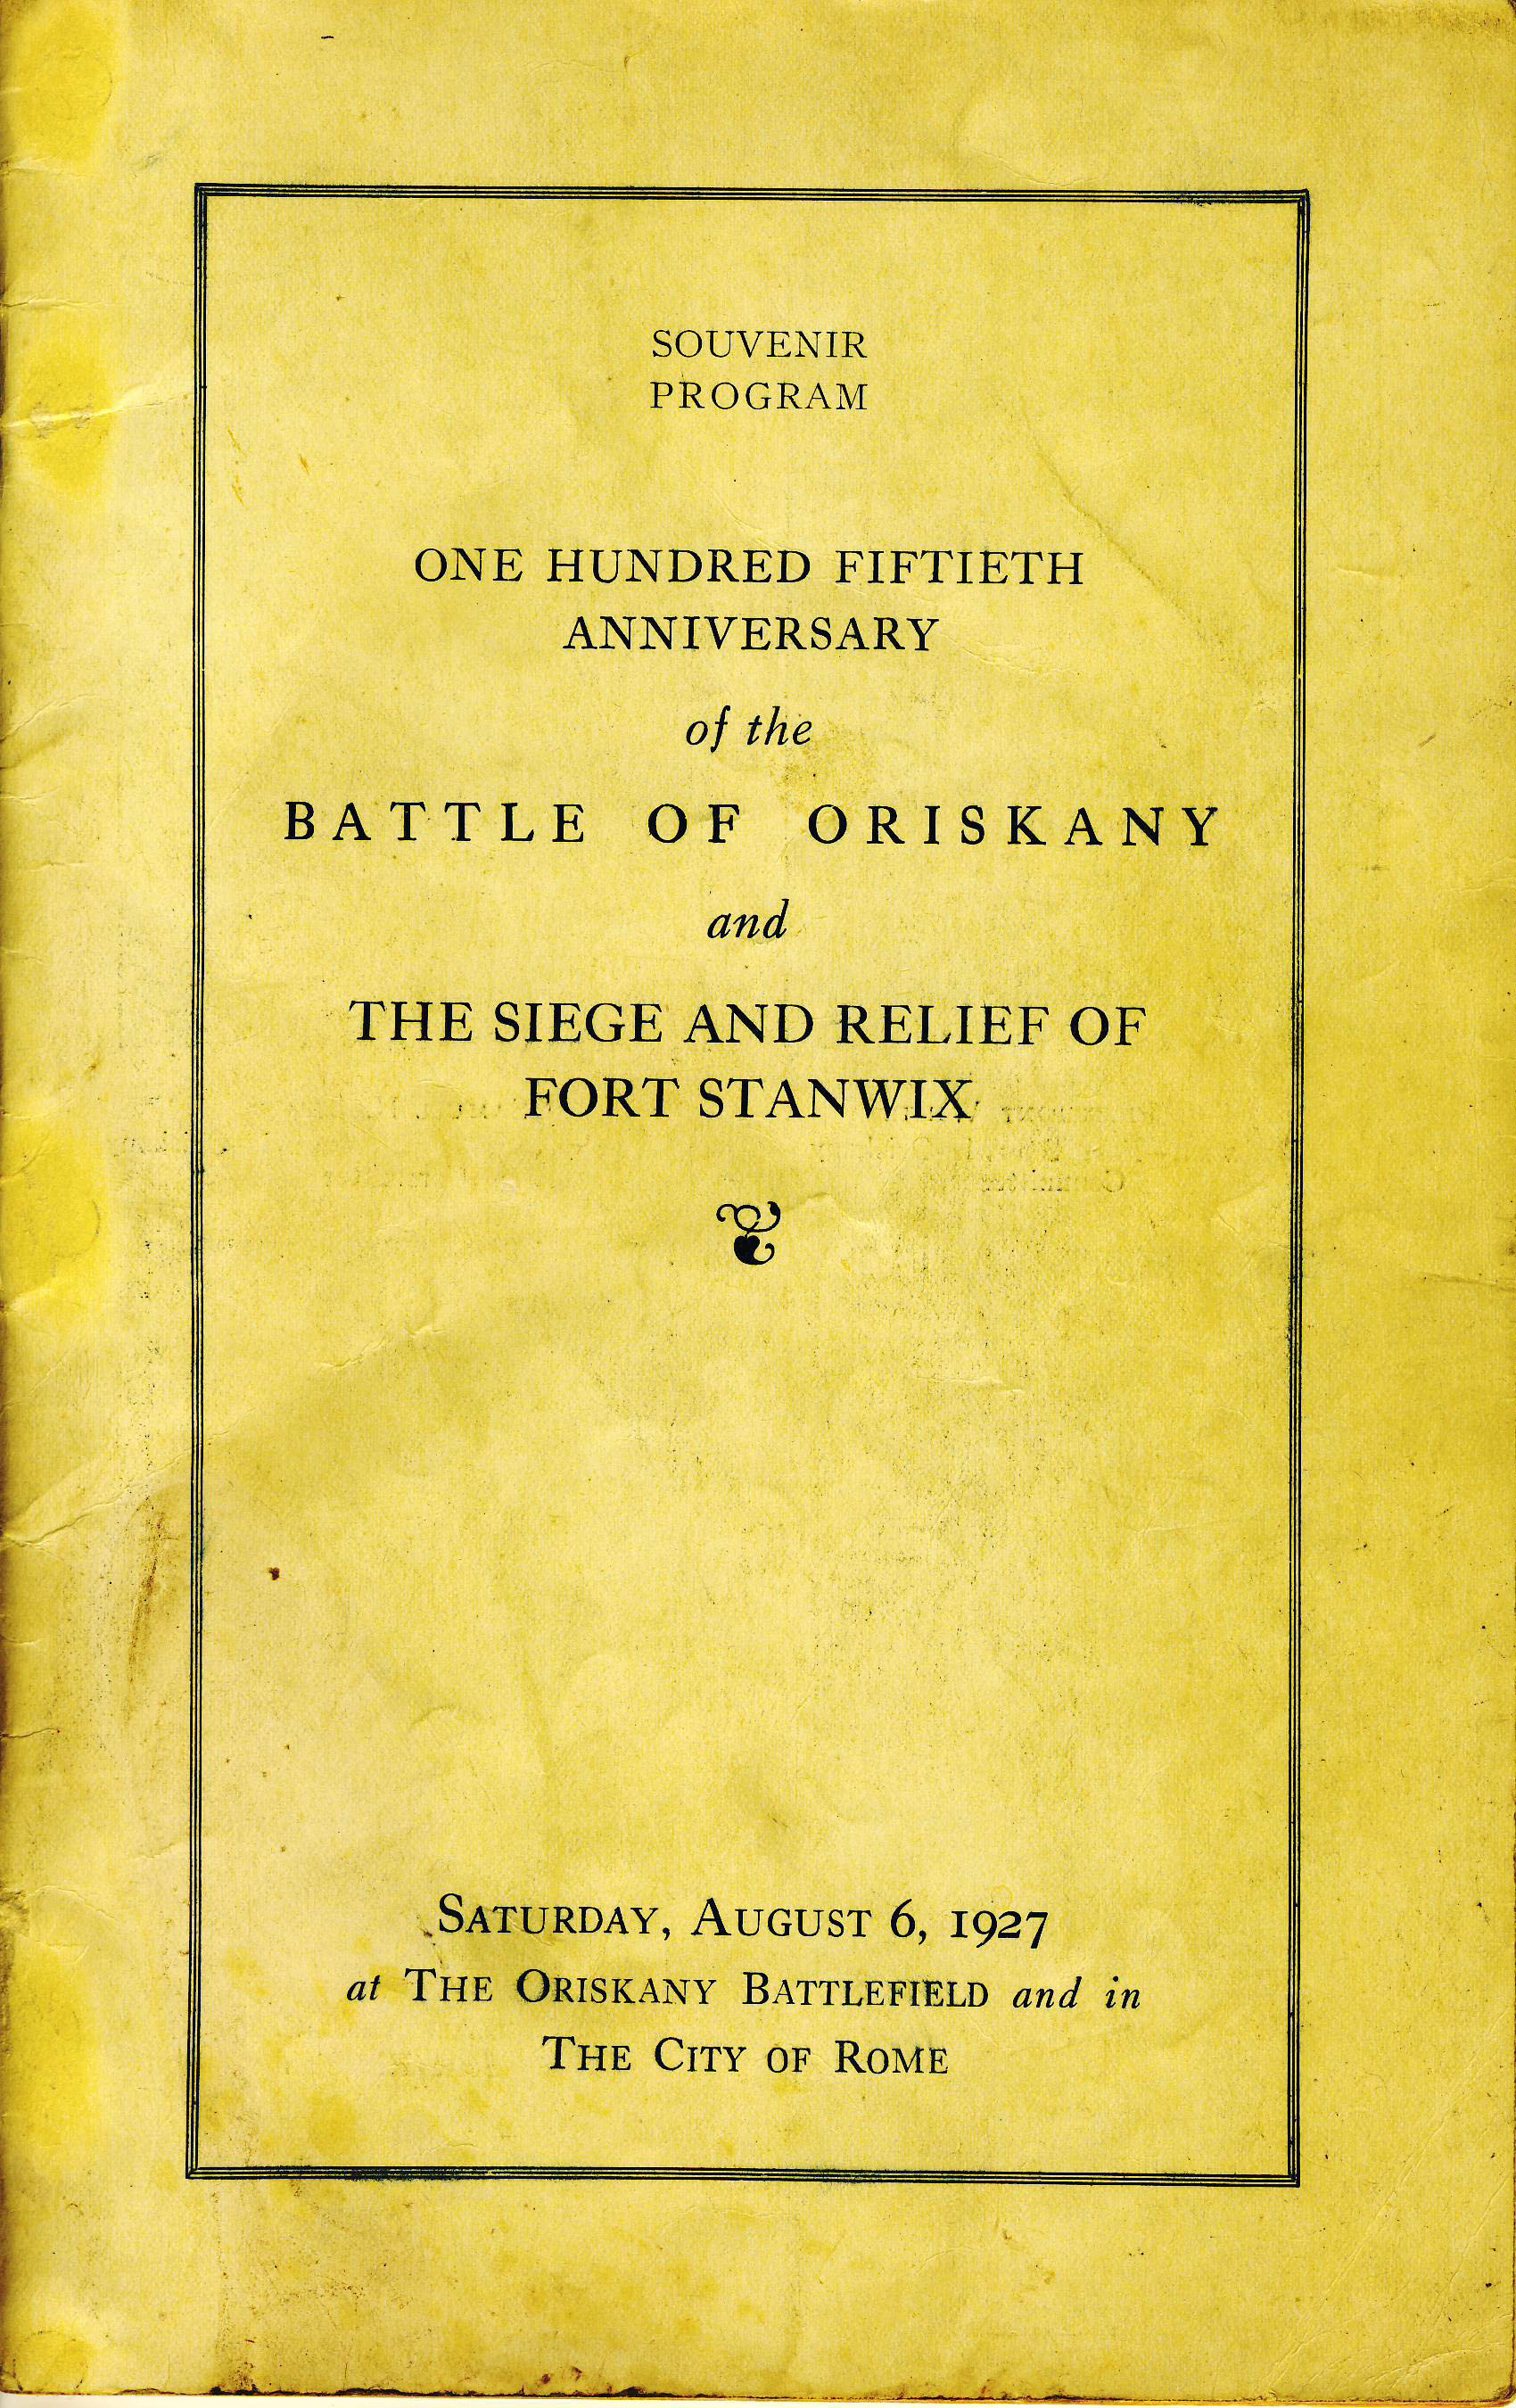 a yellowing booklet cover with bold lettering, 150th Anniversary Battle of Oriskany and Siege and Relief of Fort Stanwix